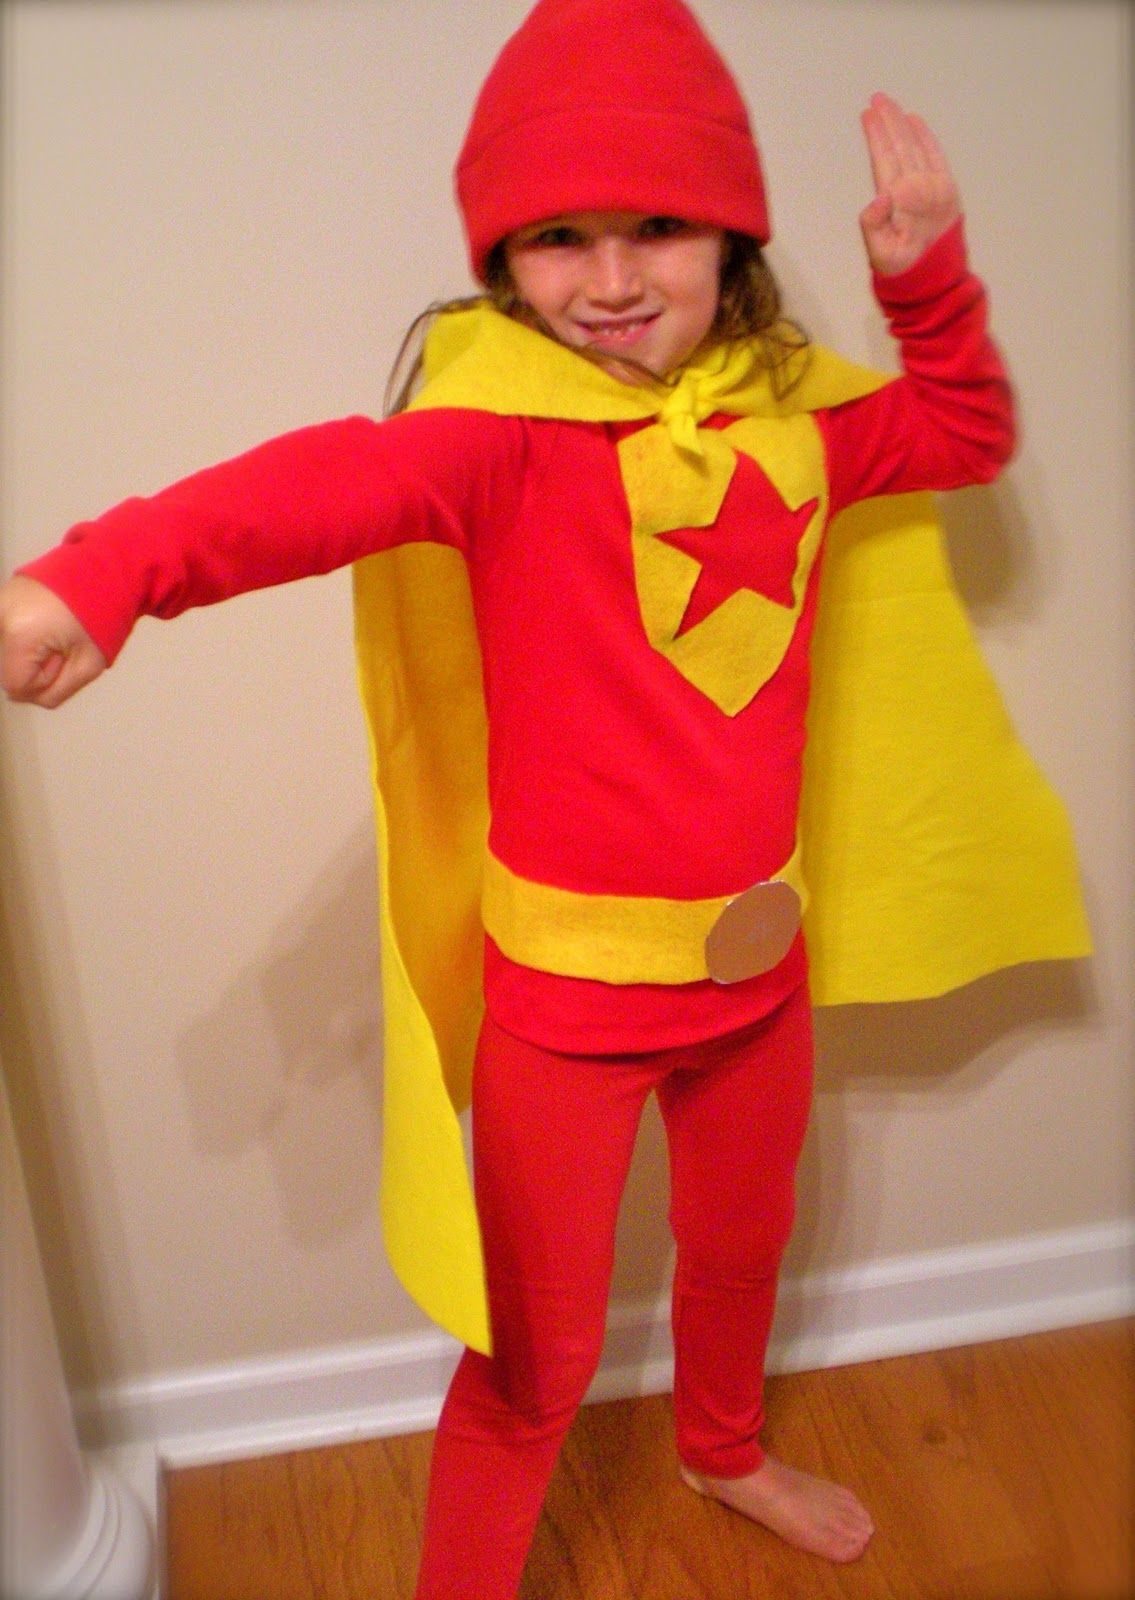 sippy cup central: word girl halloween costume | holiday | pinterest